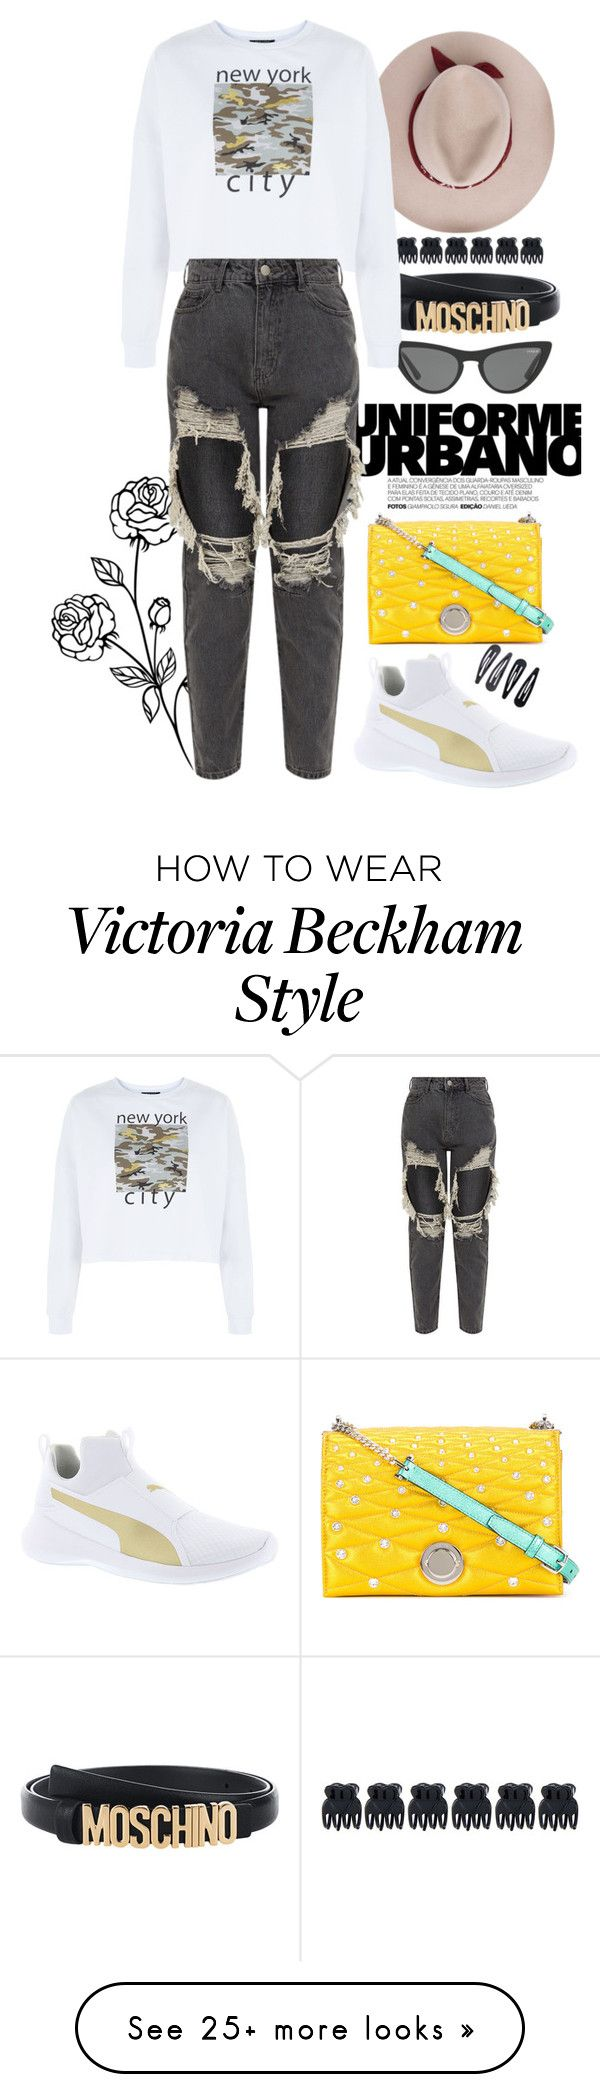 """""""New York city"""" by laeticia2111 on Polyvore featuring Victoria, Victoria Beckham, Moschino, Accessorize, Bally and Puma"""